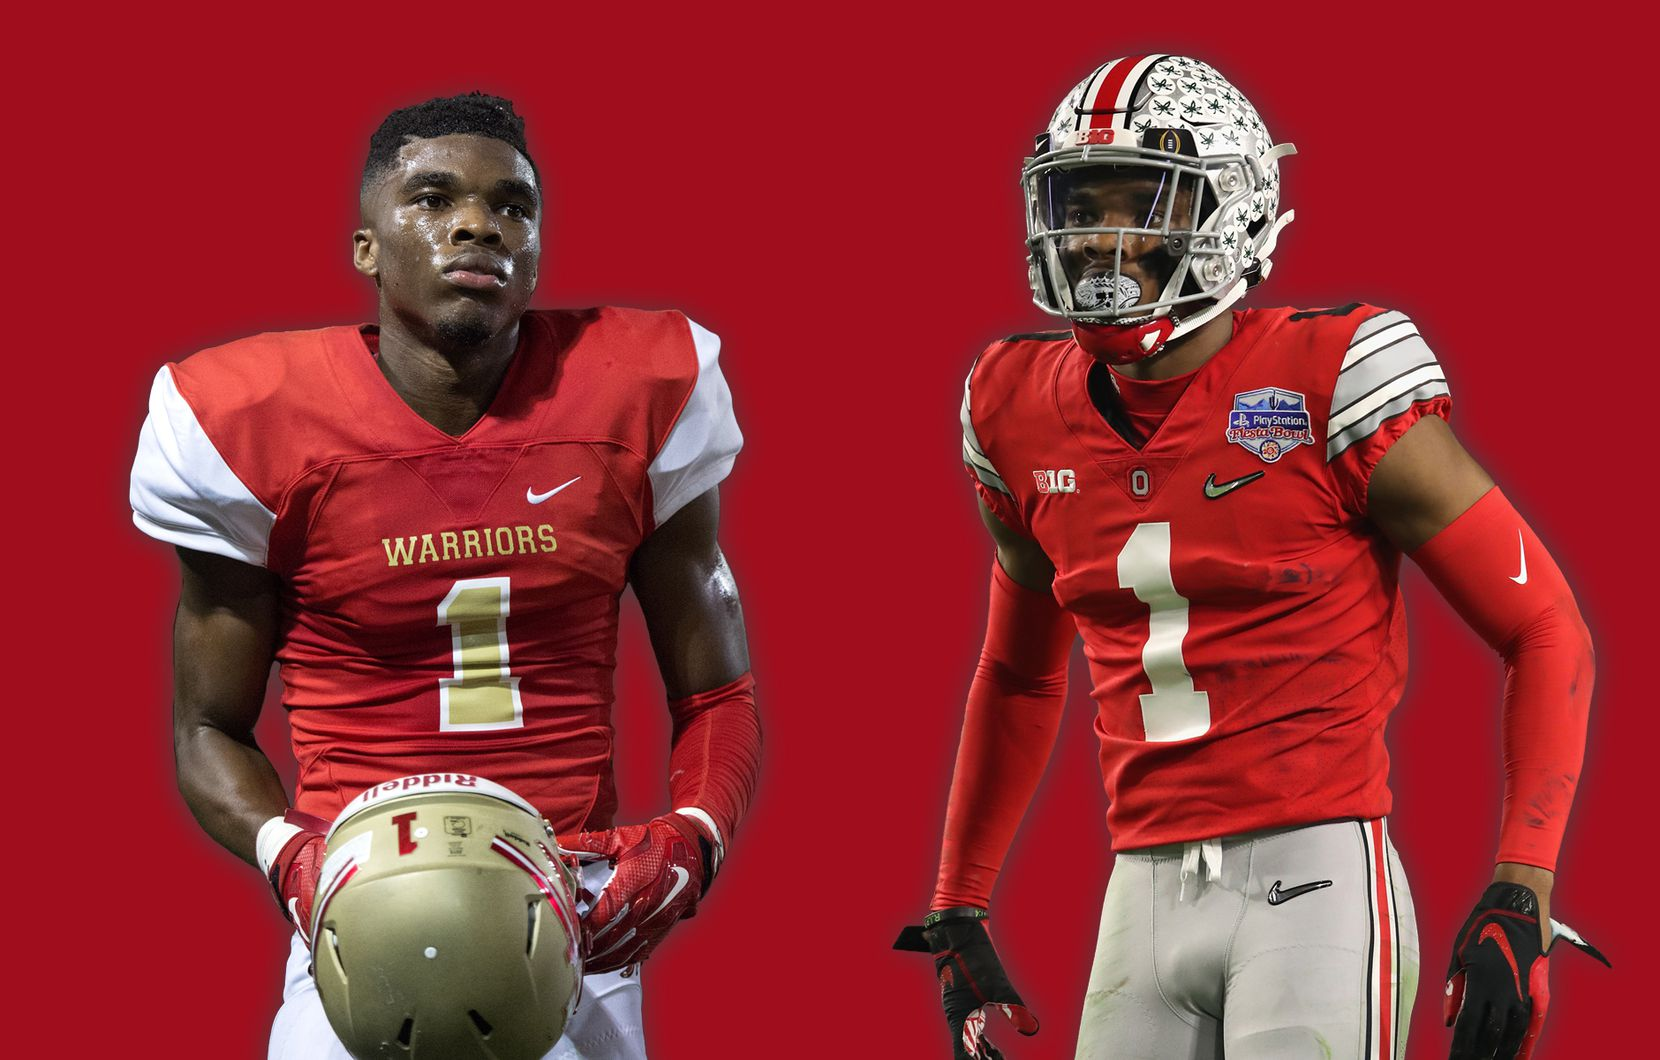 Jeffrey Okudah with South Grand Prairie in 2016 (left) and Ohio State in 2019 (right).